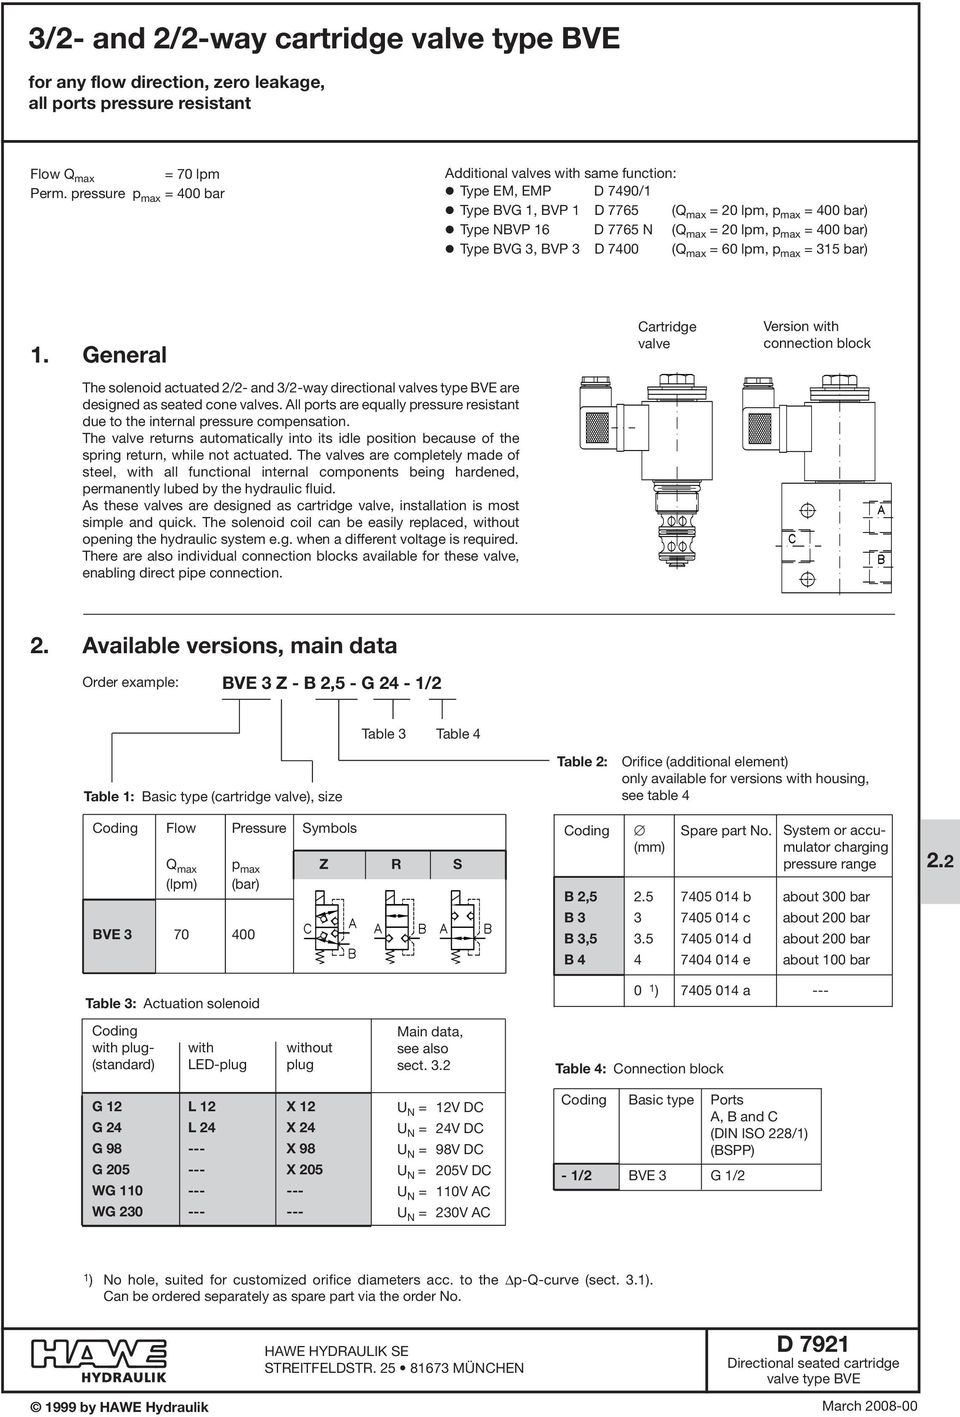 400 bar) ' Type BVG 3, BVP 3 D 7400 (Q max = 60 lpm, p max = 315 bar) 1. General The solenoid actuated 2/2- and 3/2-way directional valves type BVE are designed as seated cone valves.